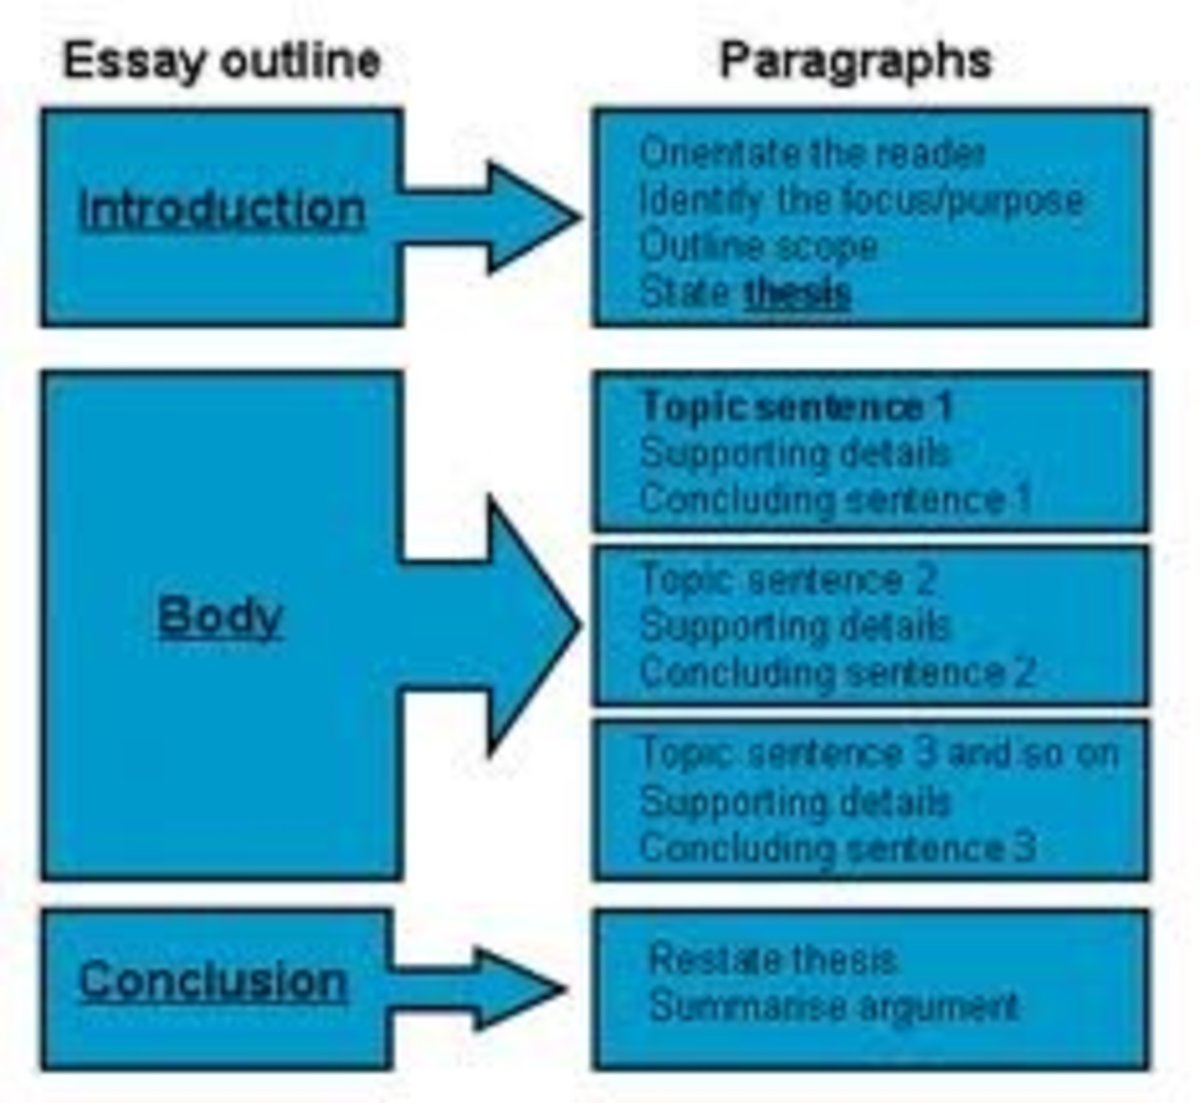 Essay Form And Structure: How To Write An Essay | Letterpile